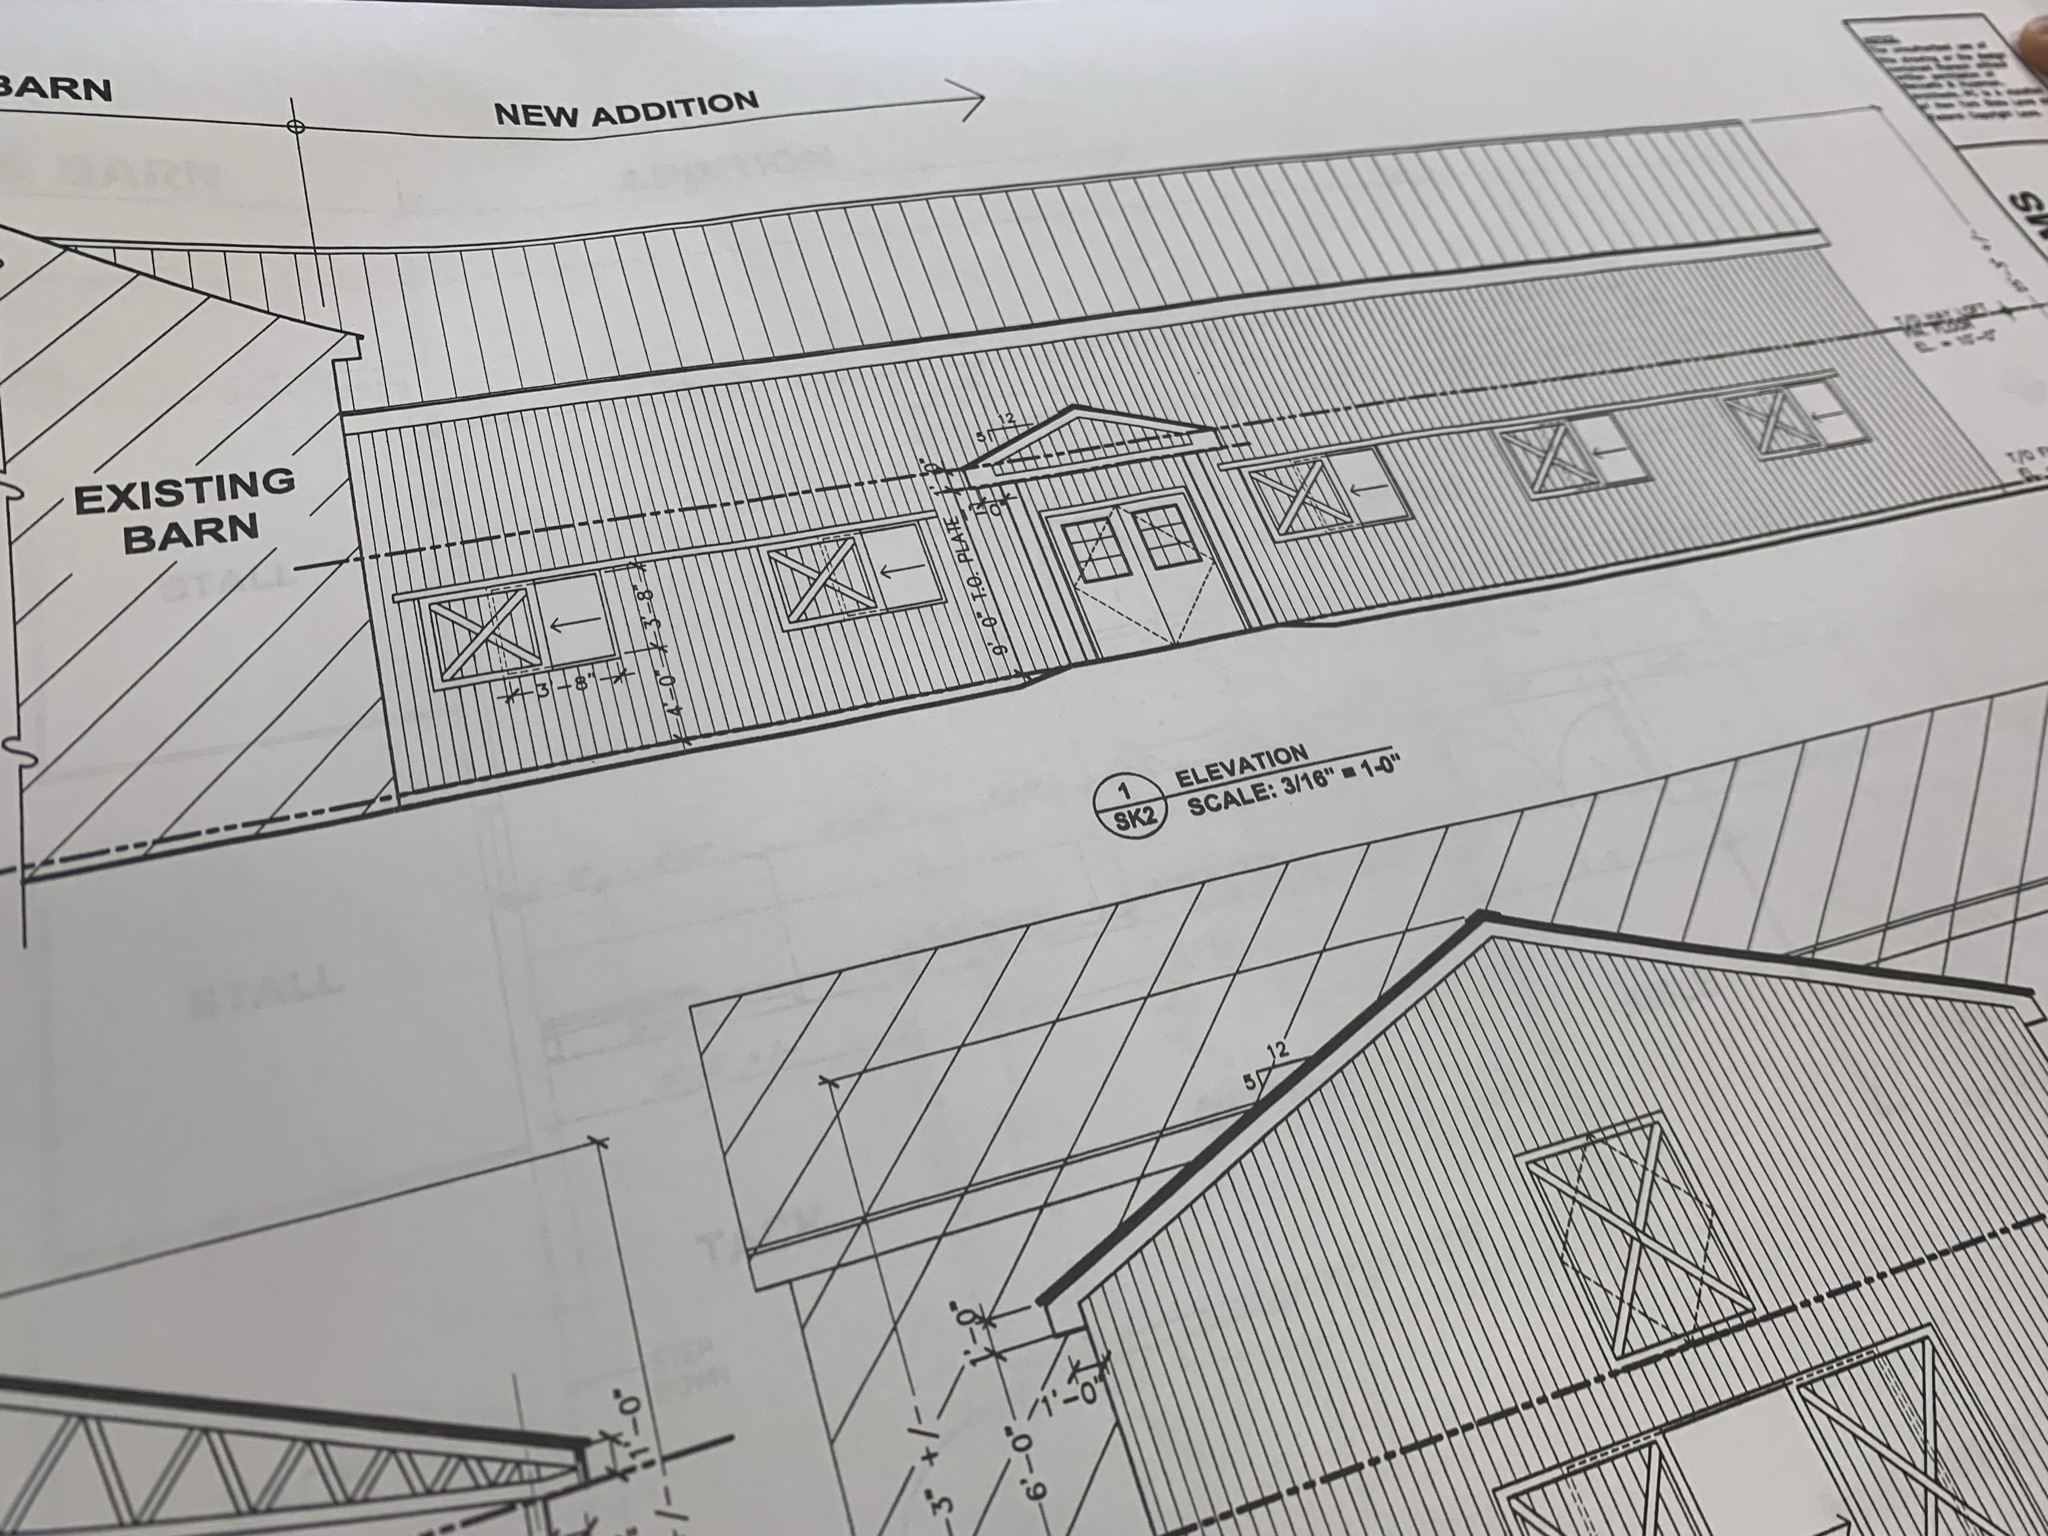 Blue Print of Barn Expansion